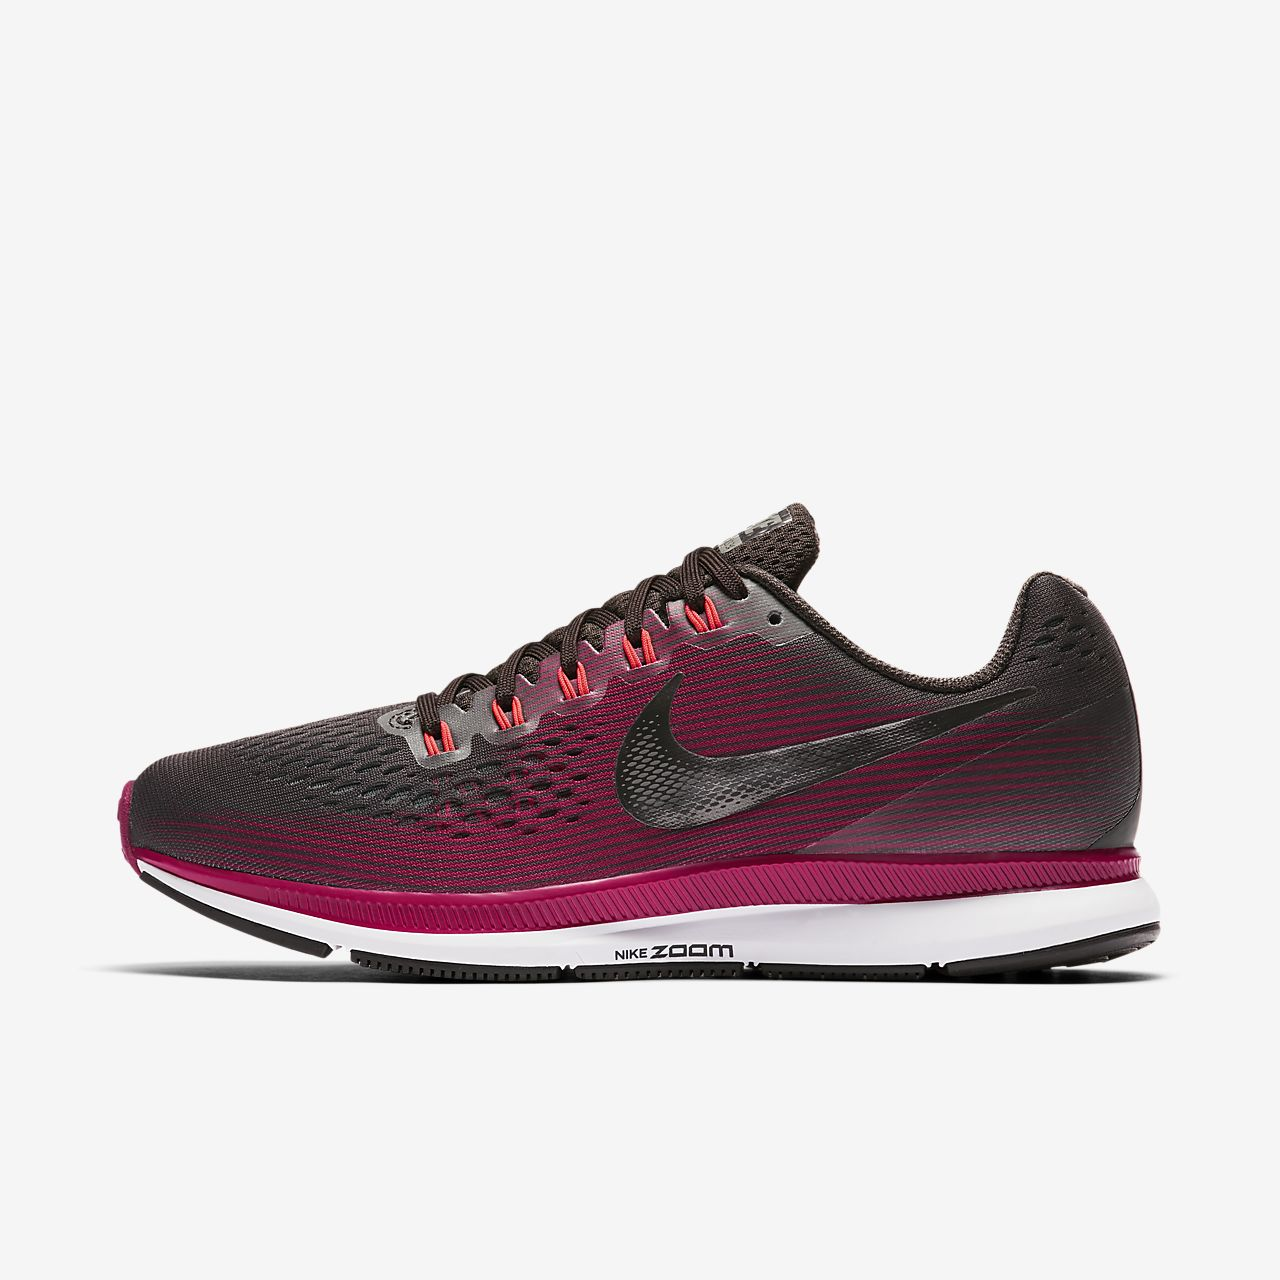 Nike Air Zoom Pegasus 34 Gem 女子跑步鞋